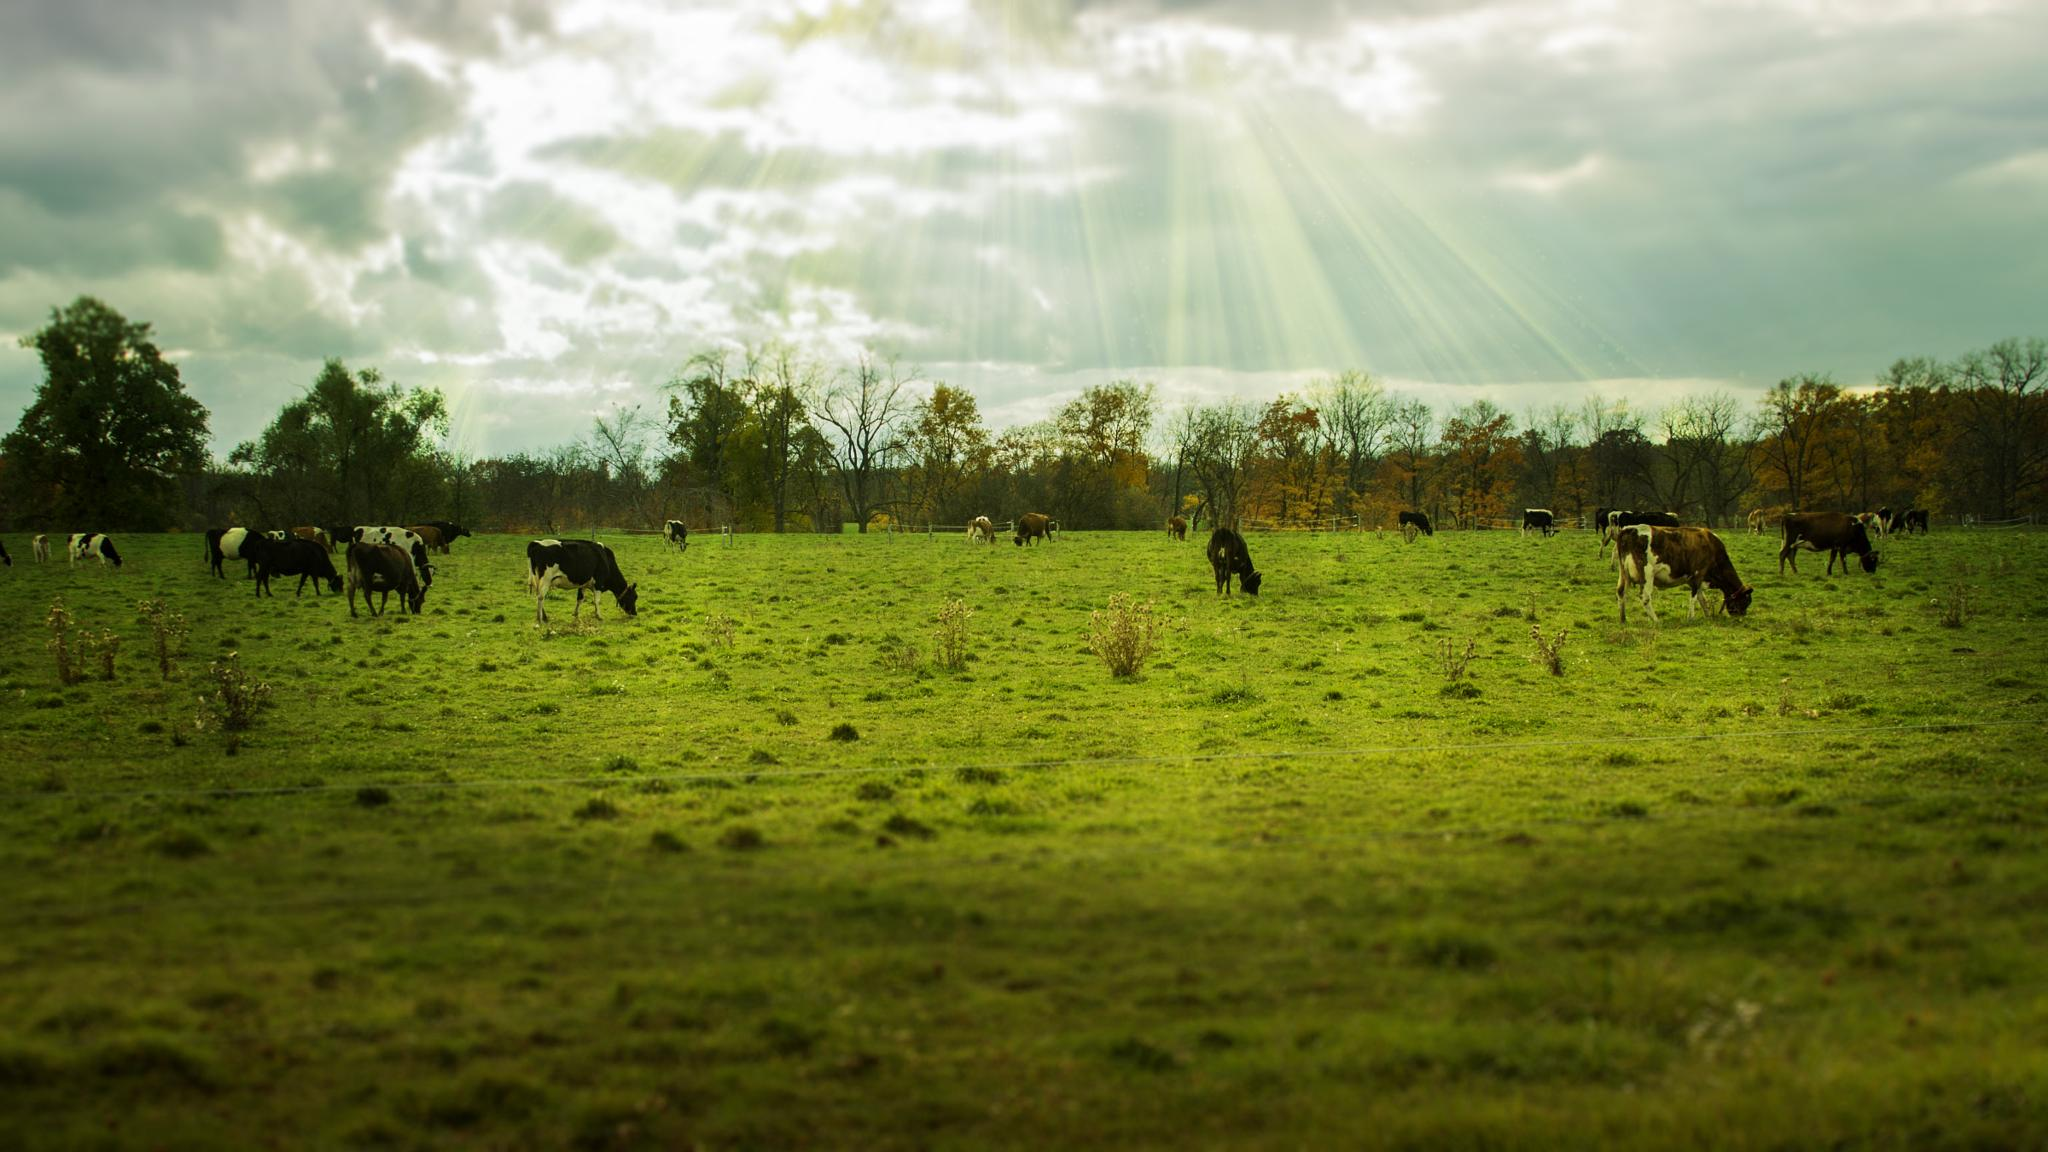 Green Pastures by sandra wagner